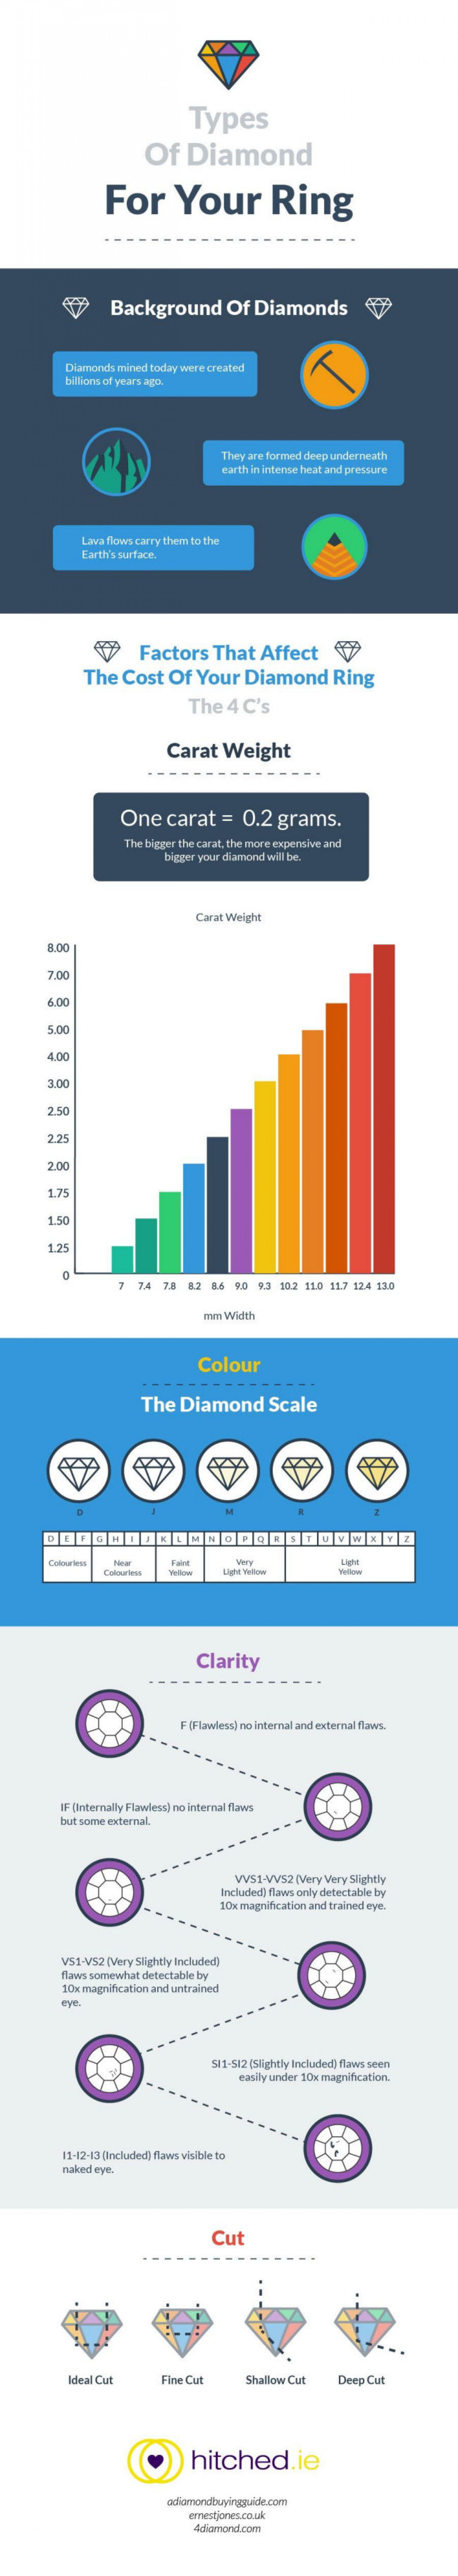 Types Of Diamond For Your Ring Infographic